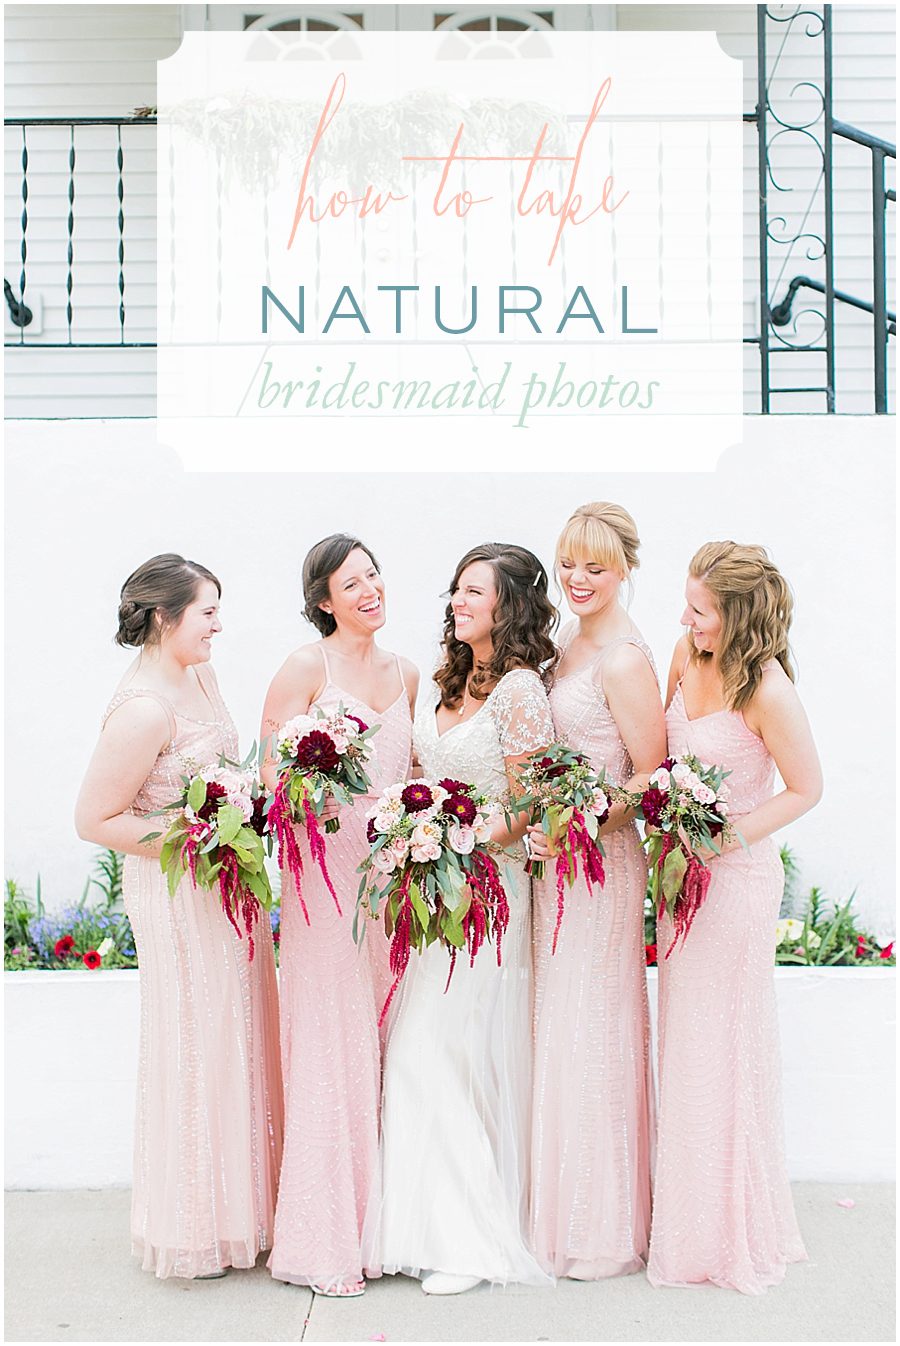 Photo Tips - How to take natural photos of the bridesmaids